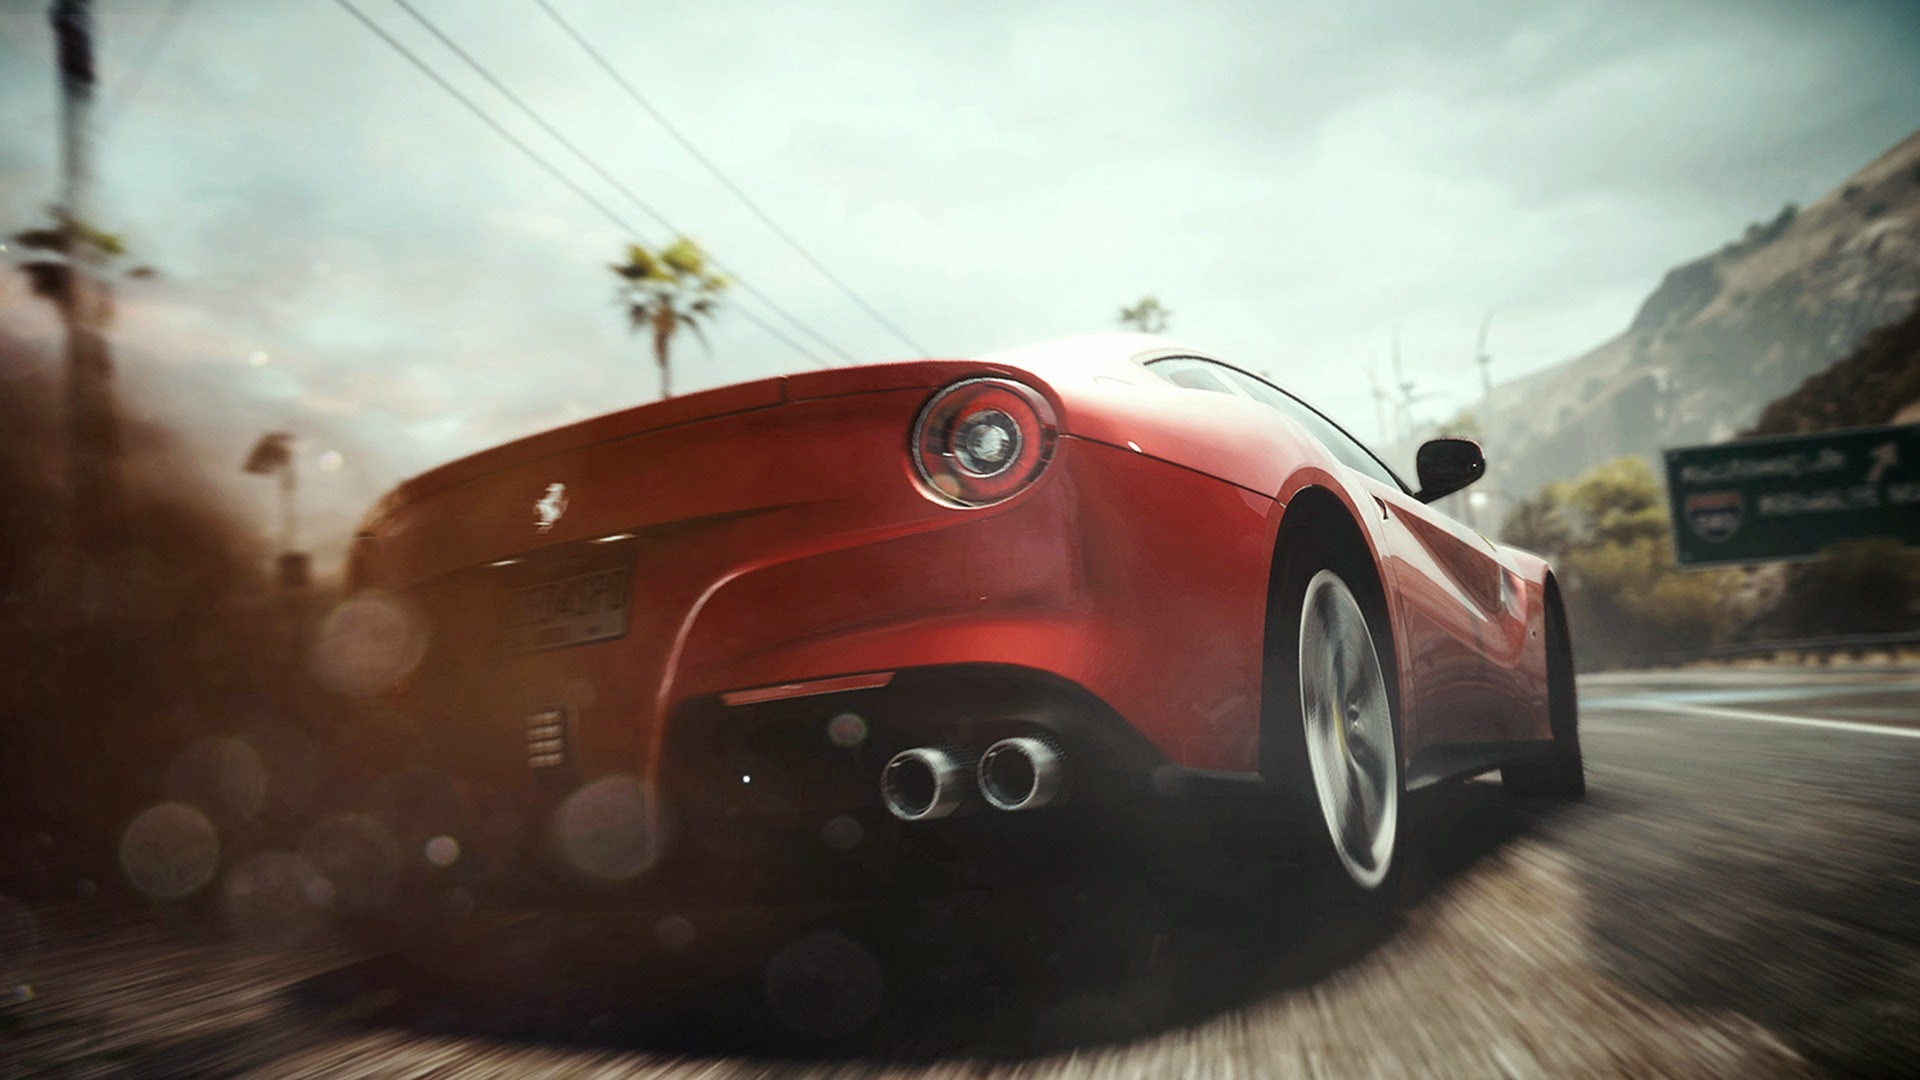 need for speed rivals wallpapers wallpaperdeck. Black Bedroom Furniture Sets. Home Design Ideas